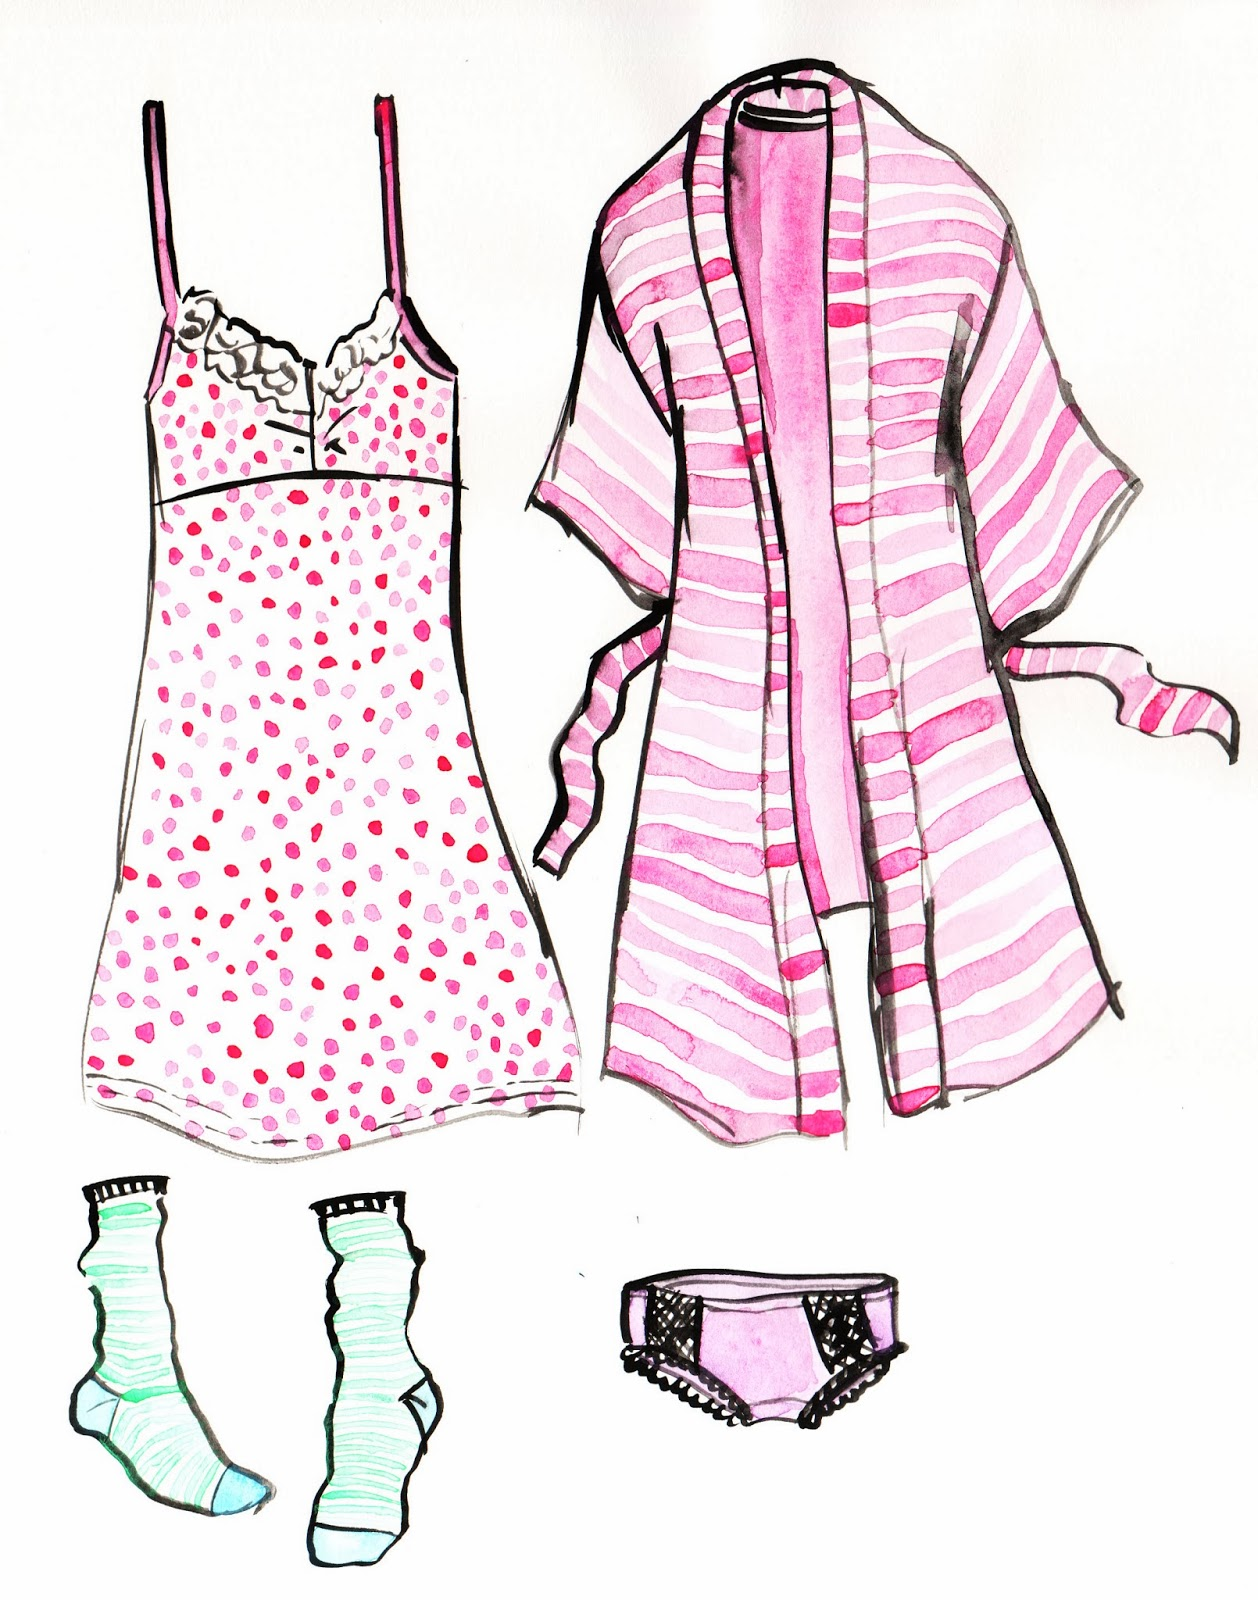 pajama-illustration, watercolor-pajamas, watercolor-fashion-illustration, watercolor-loungewear